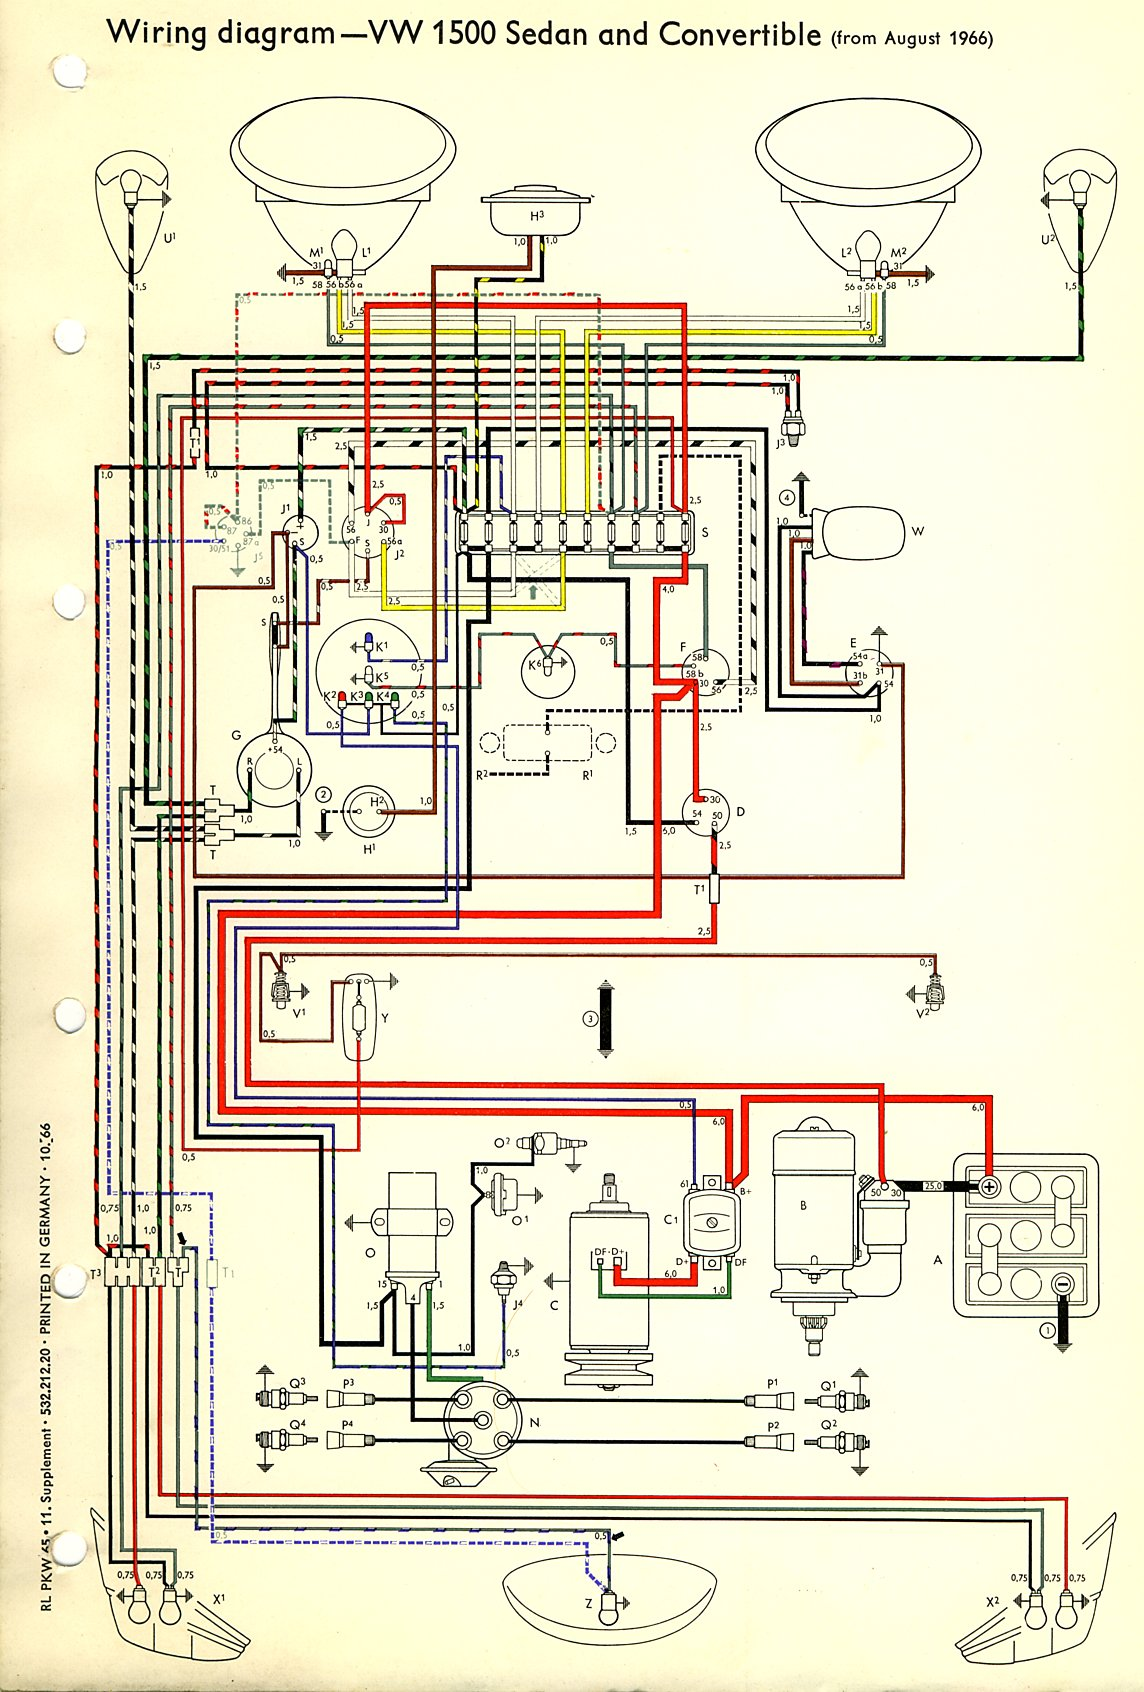 bug_67 1967 beetle wiring diagram thegoldenbug com 1968 volkswagen beetle wiring harness at mifinder.co